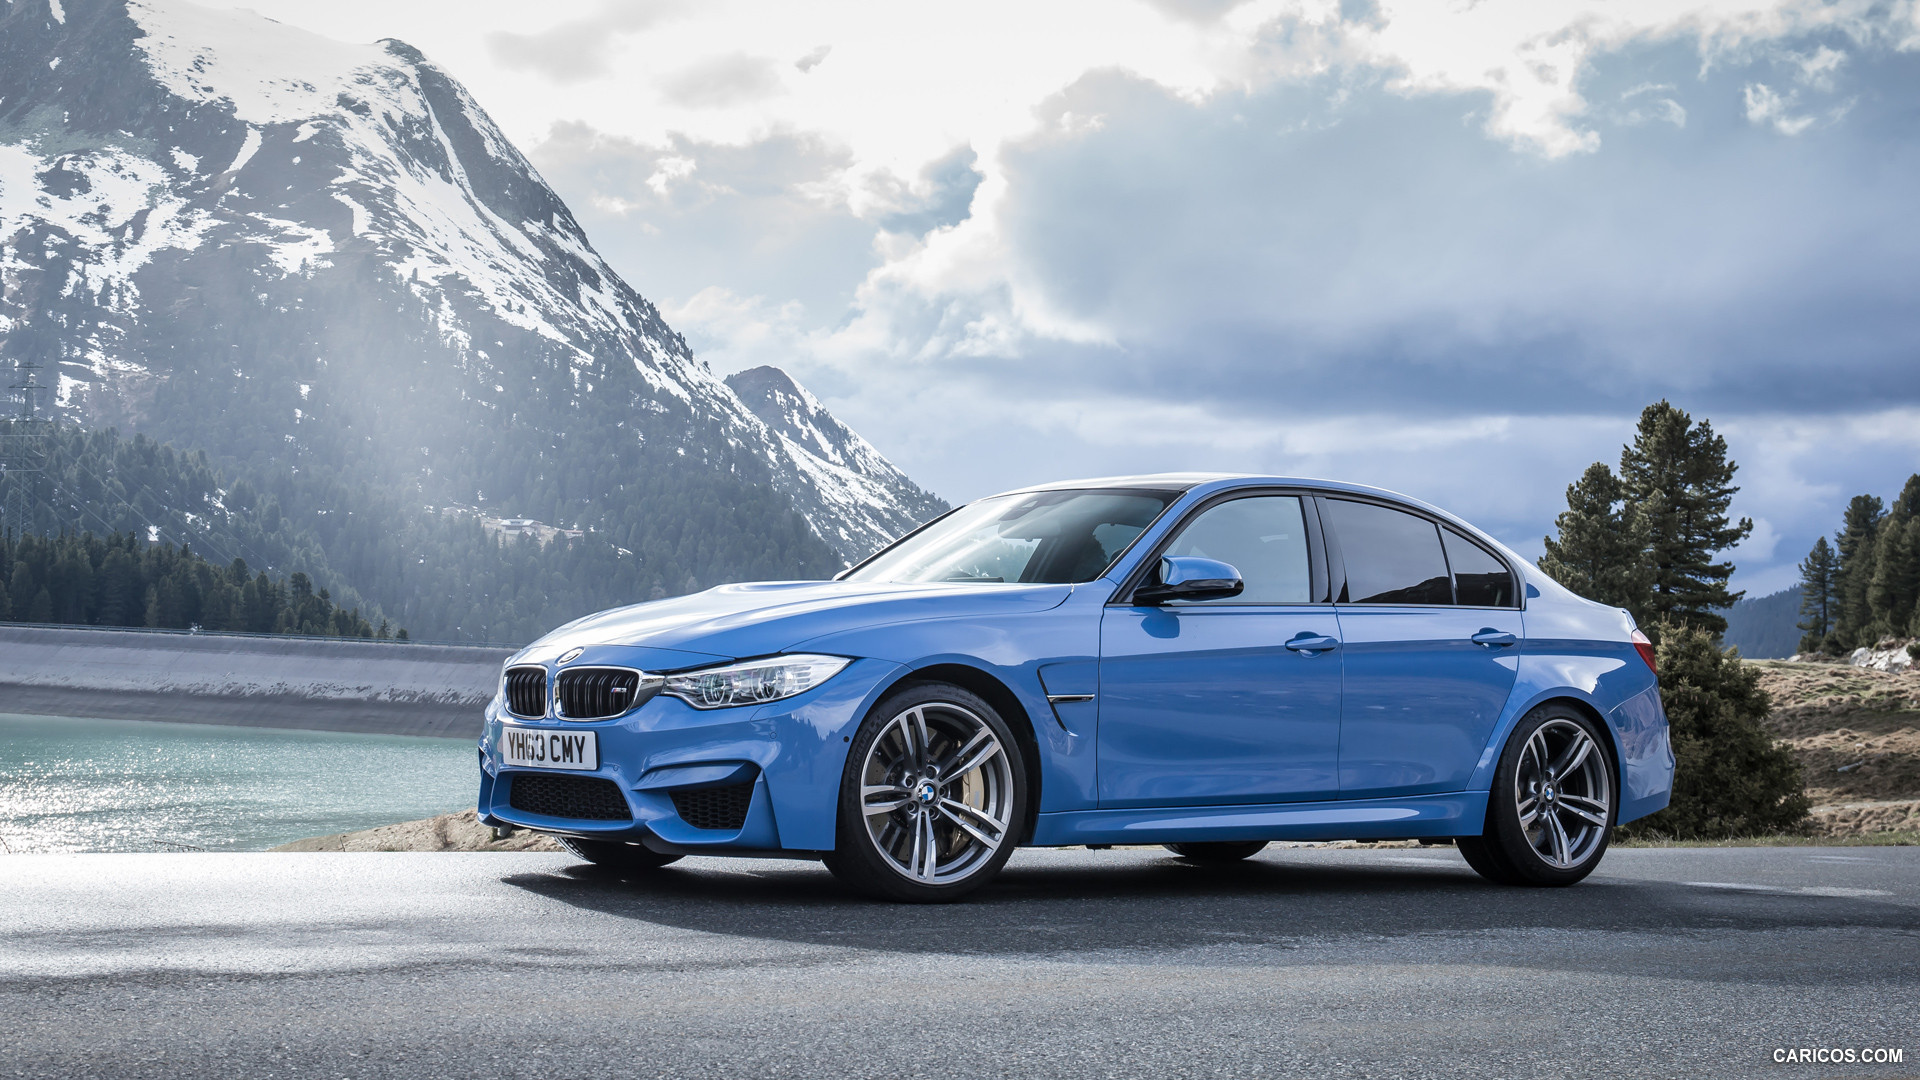 BMW M3 Wallpapers (76+ Images